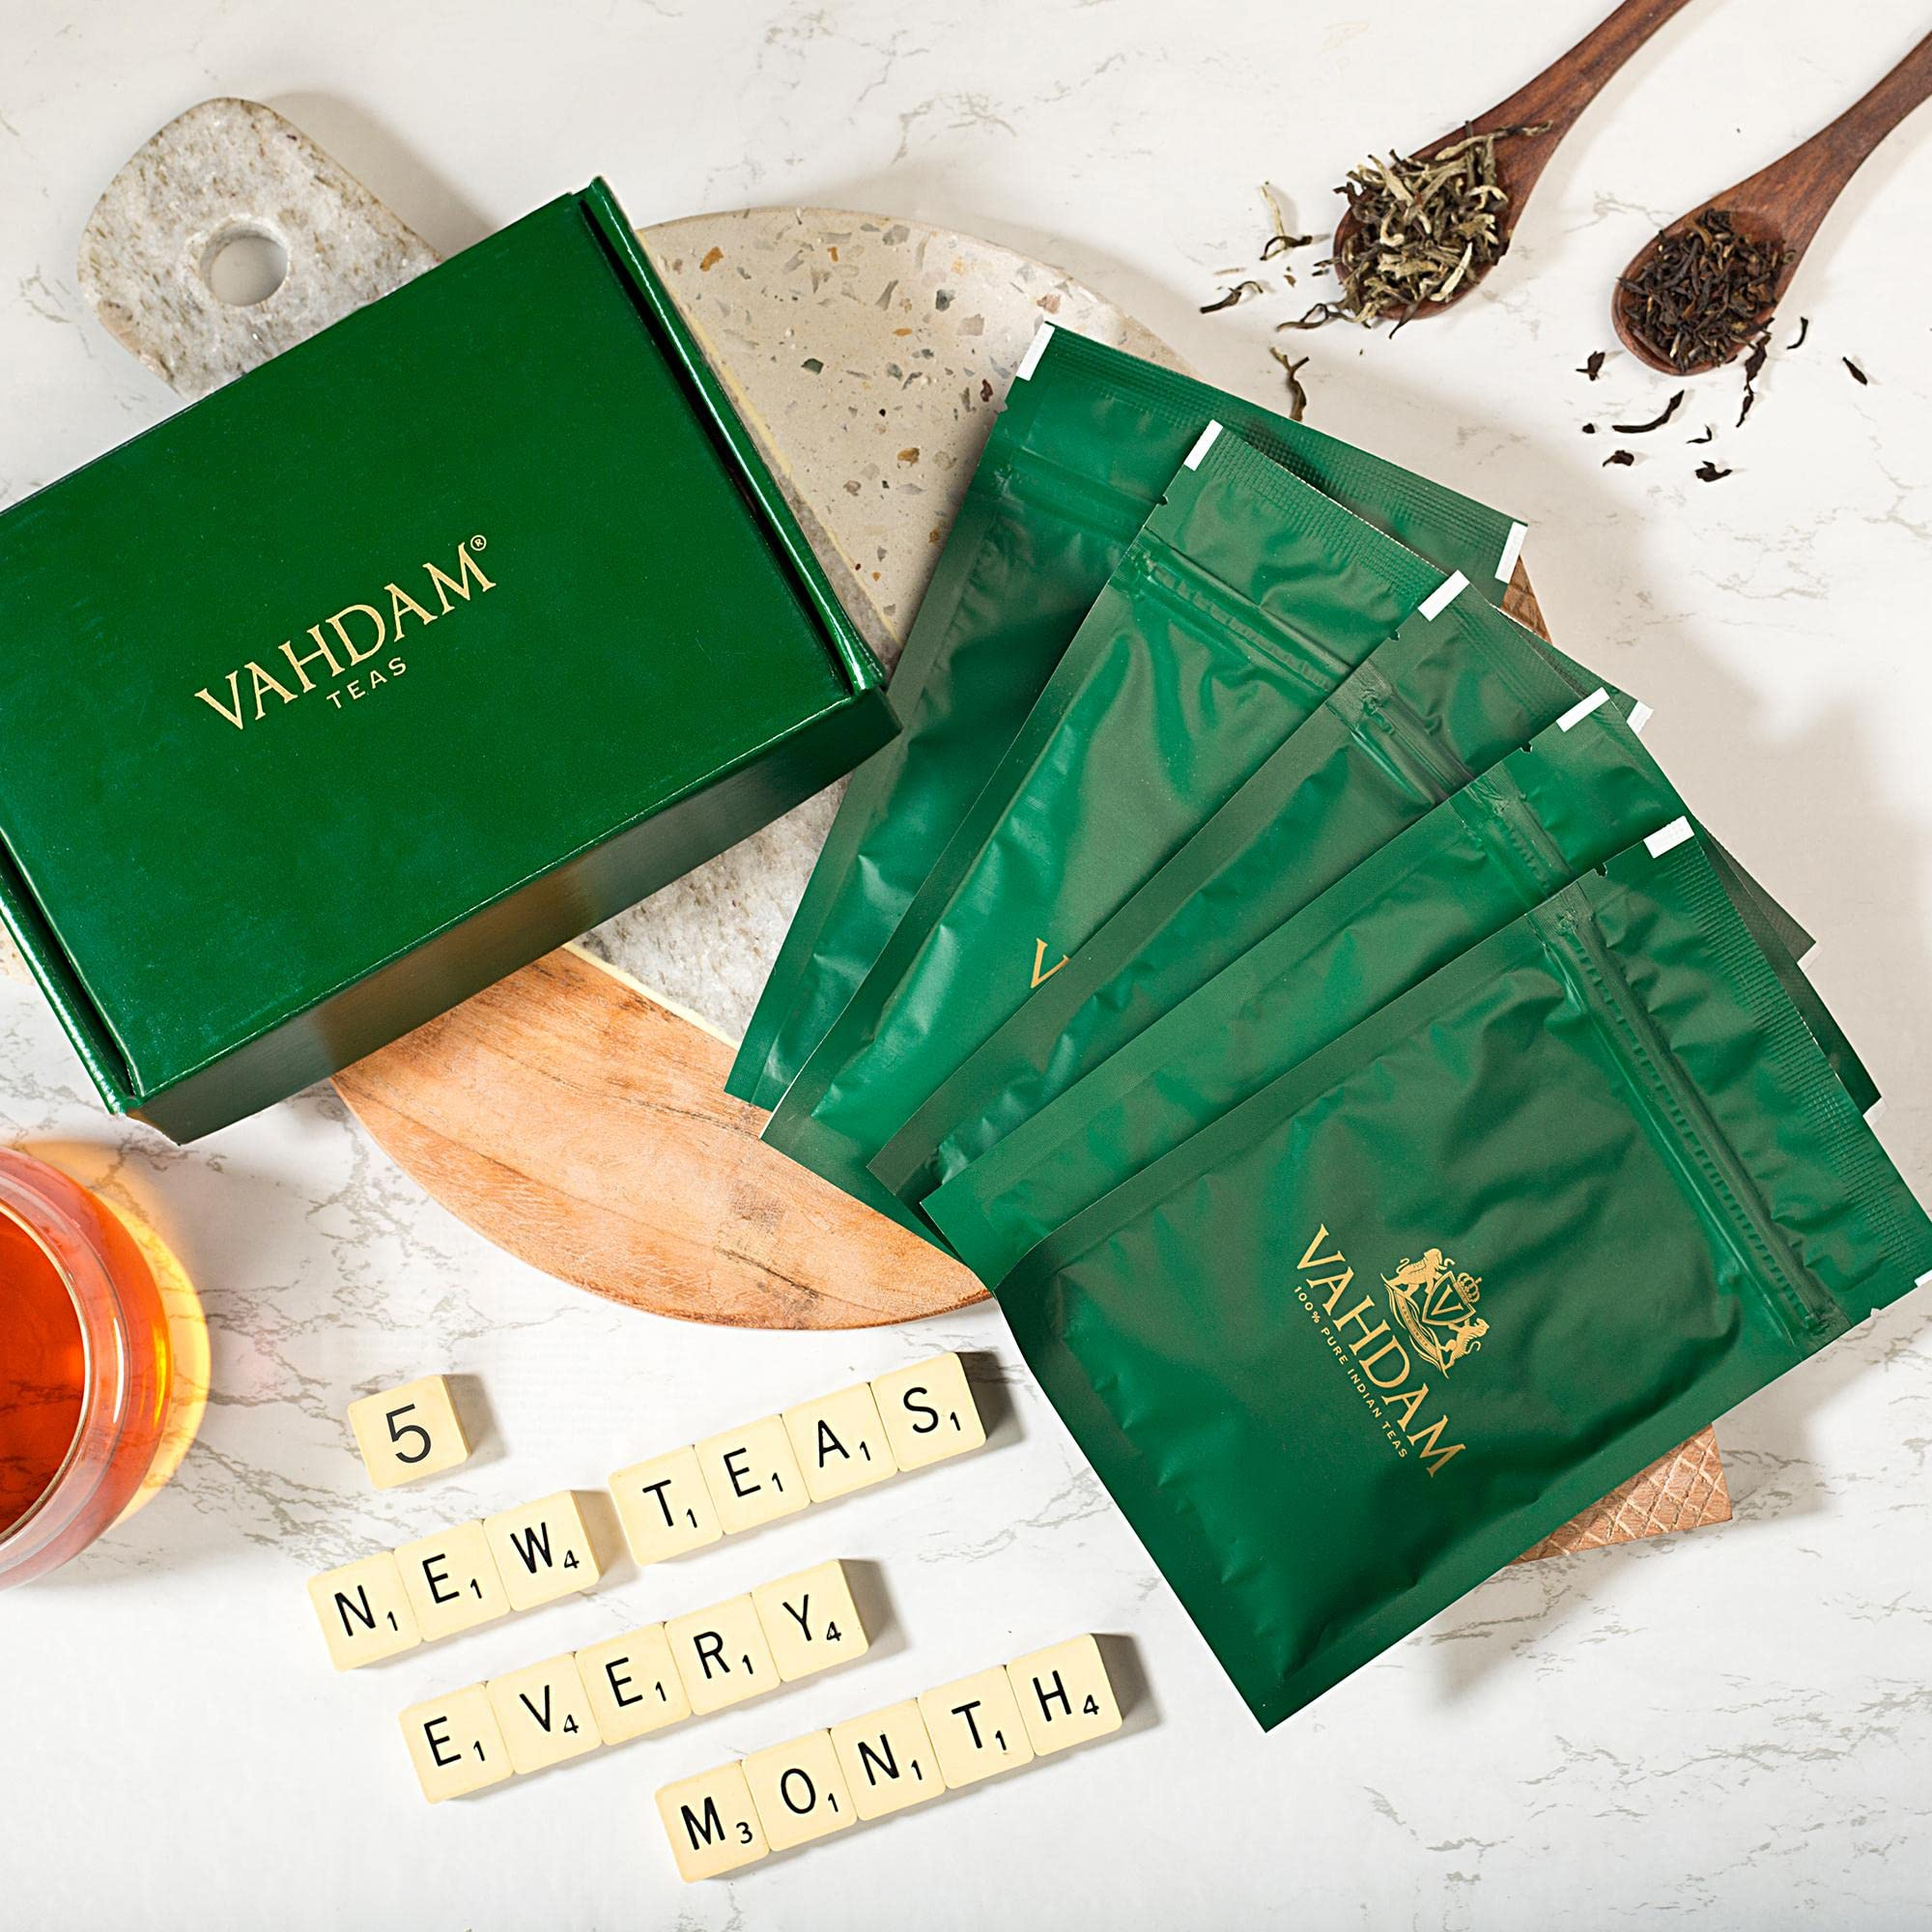 Vahdam, Loose Leaf Tea Variety Subscription Box - 5 Teas, 35+ Servings - 100% Natural Teas, Hand-picked from India's Choicest Tea Estates